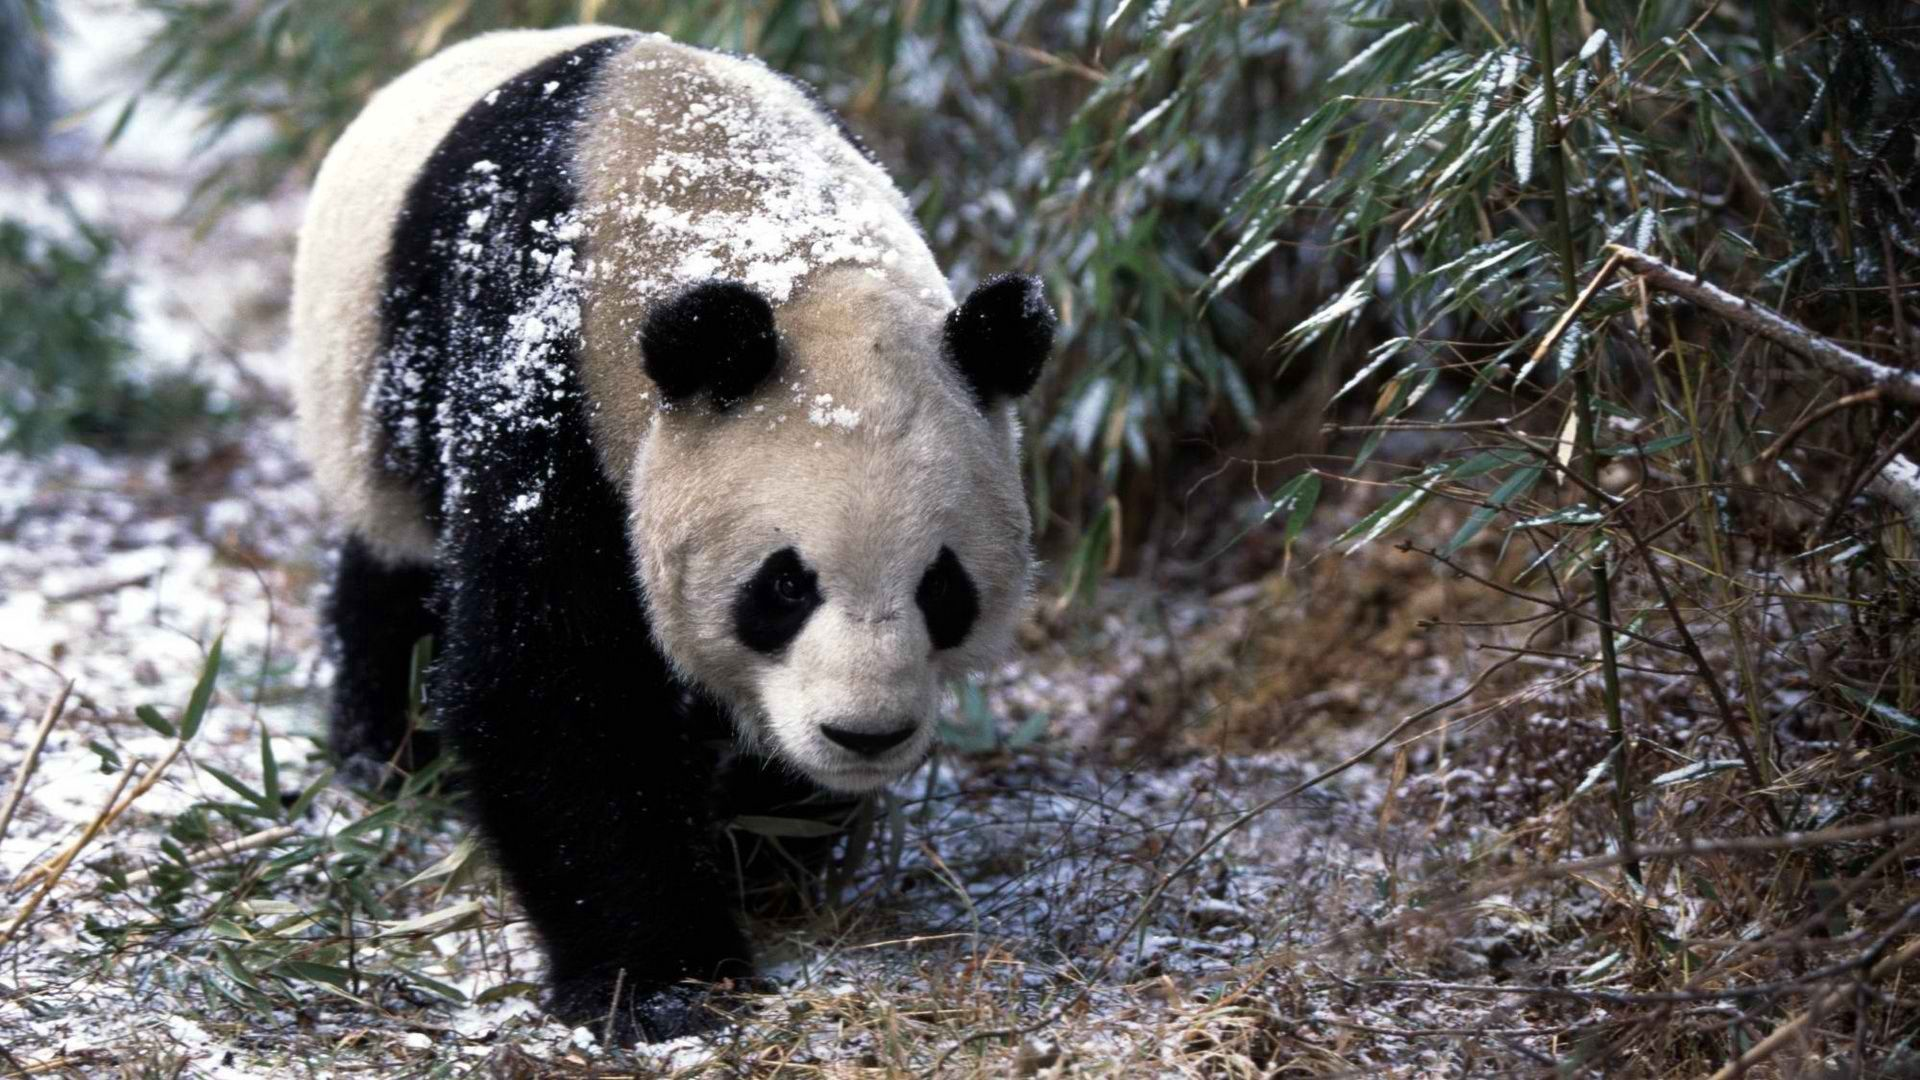 139593 download wallpaper Animals, Panda, Snow, Grass, Stroll, Trees screensavers and pictures for free